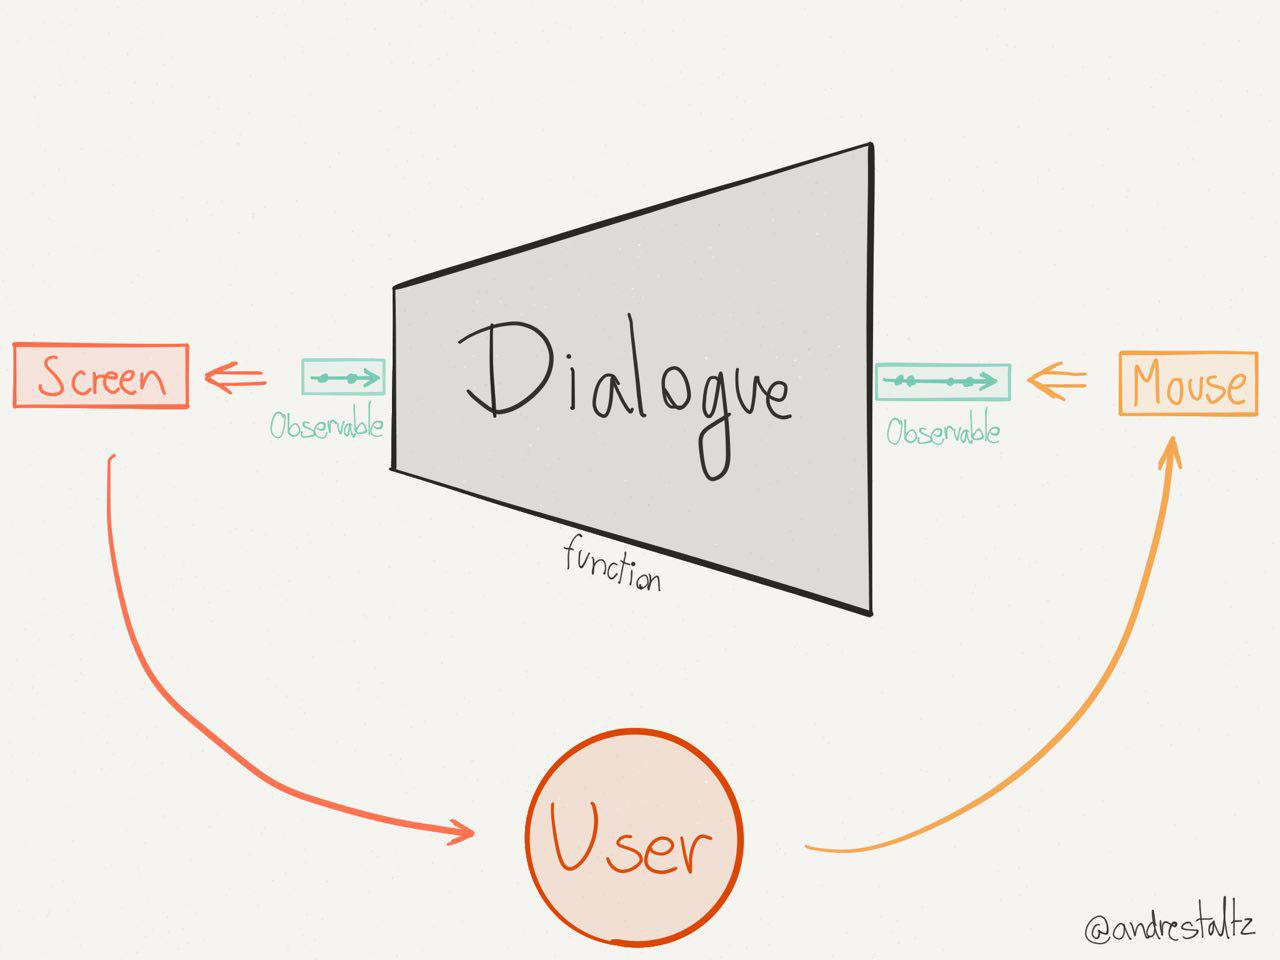 A Dialogue function as a UI program